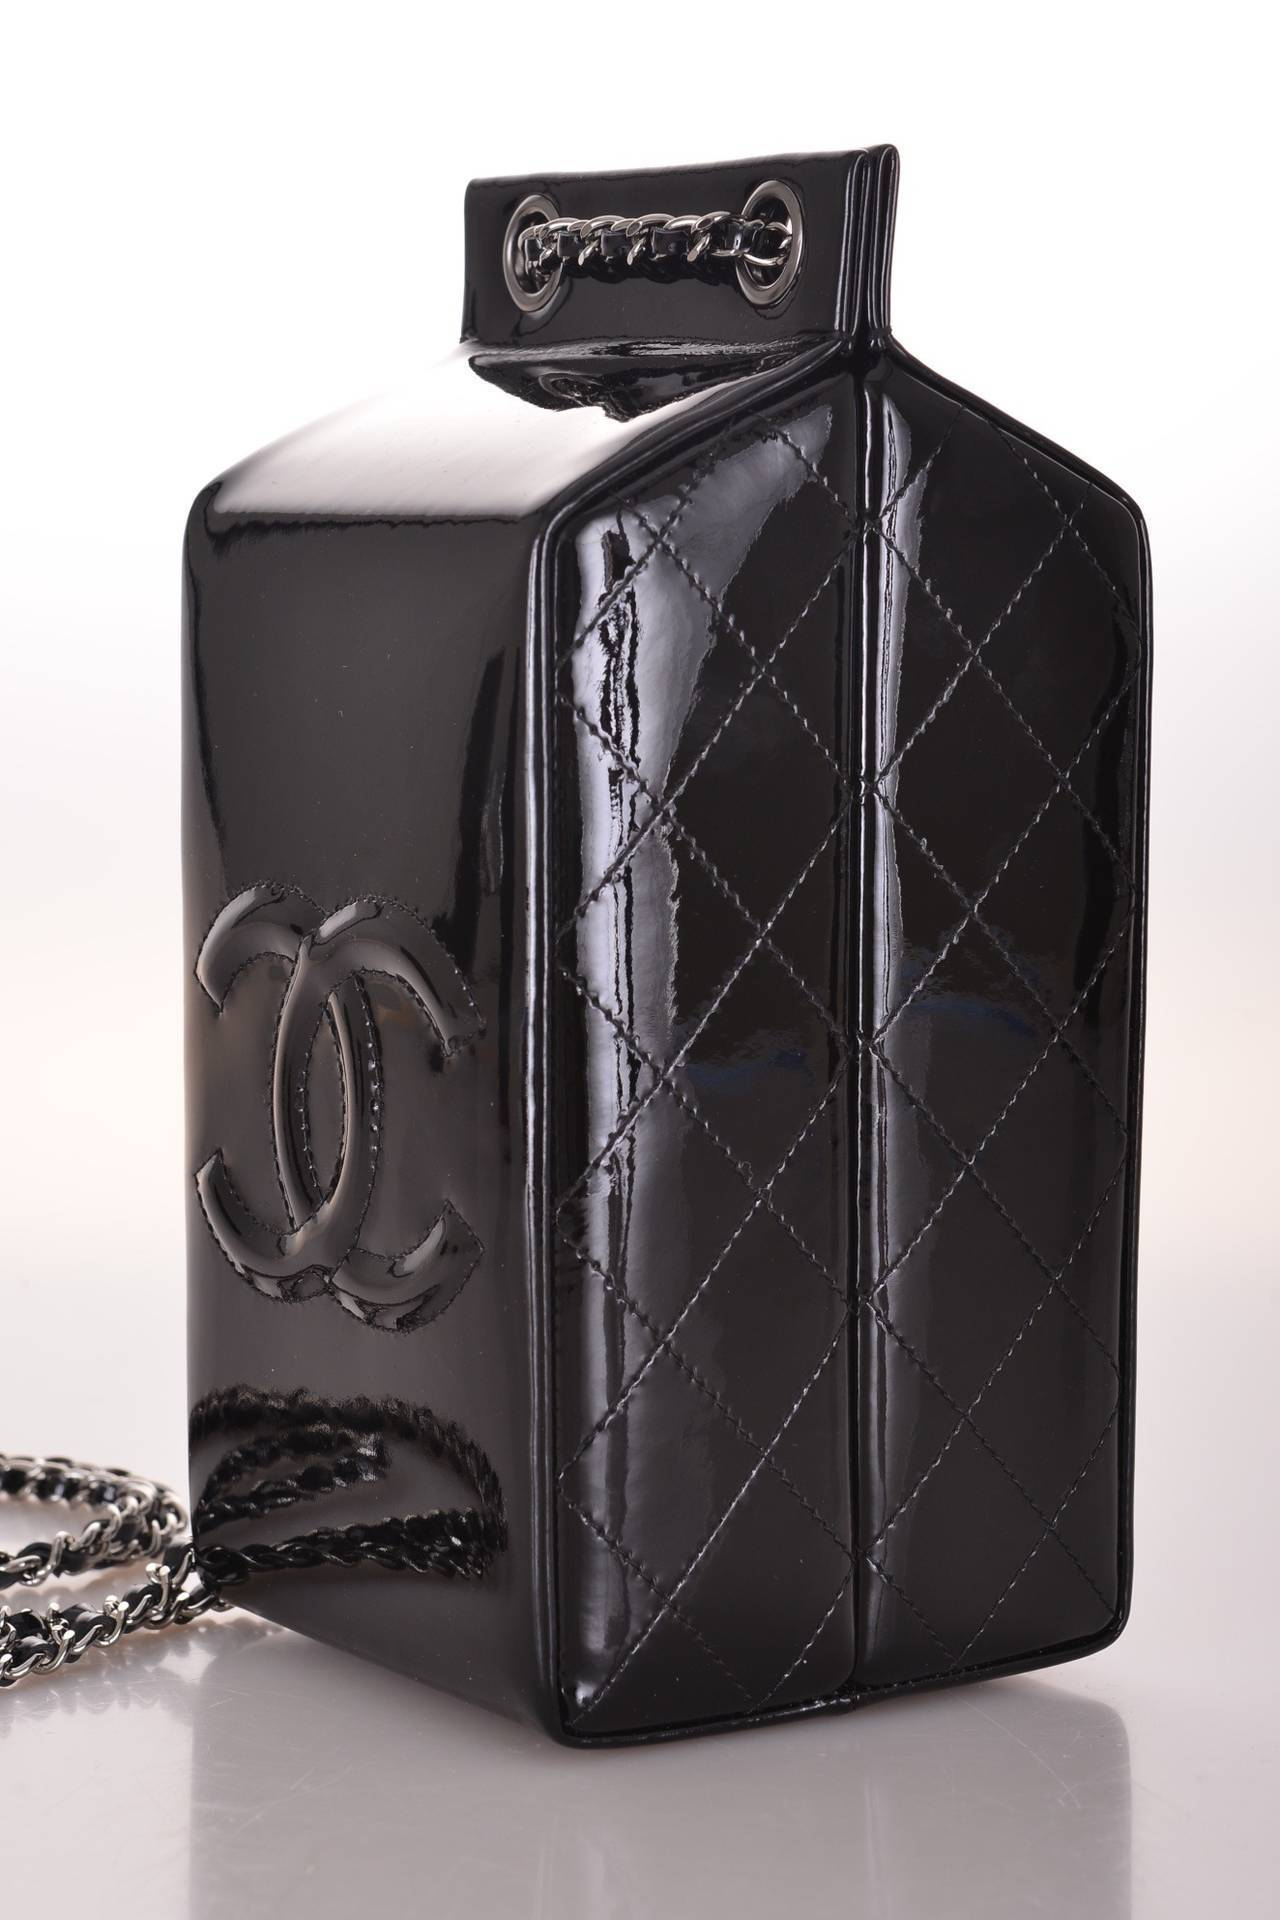 Limited Edition Black Patent Leather CHANEL Milk Carton Bottle Cross Body Bag 2